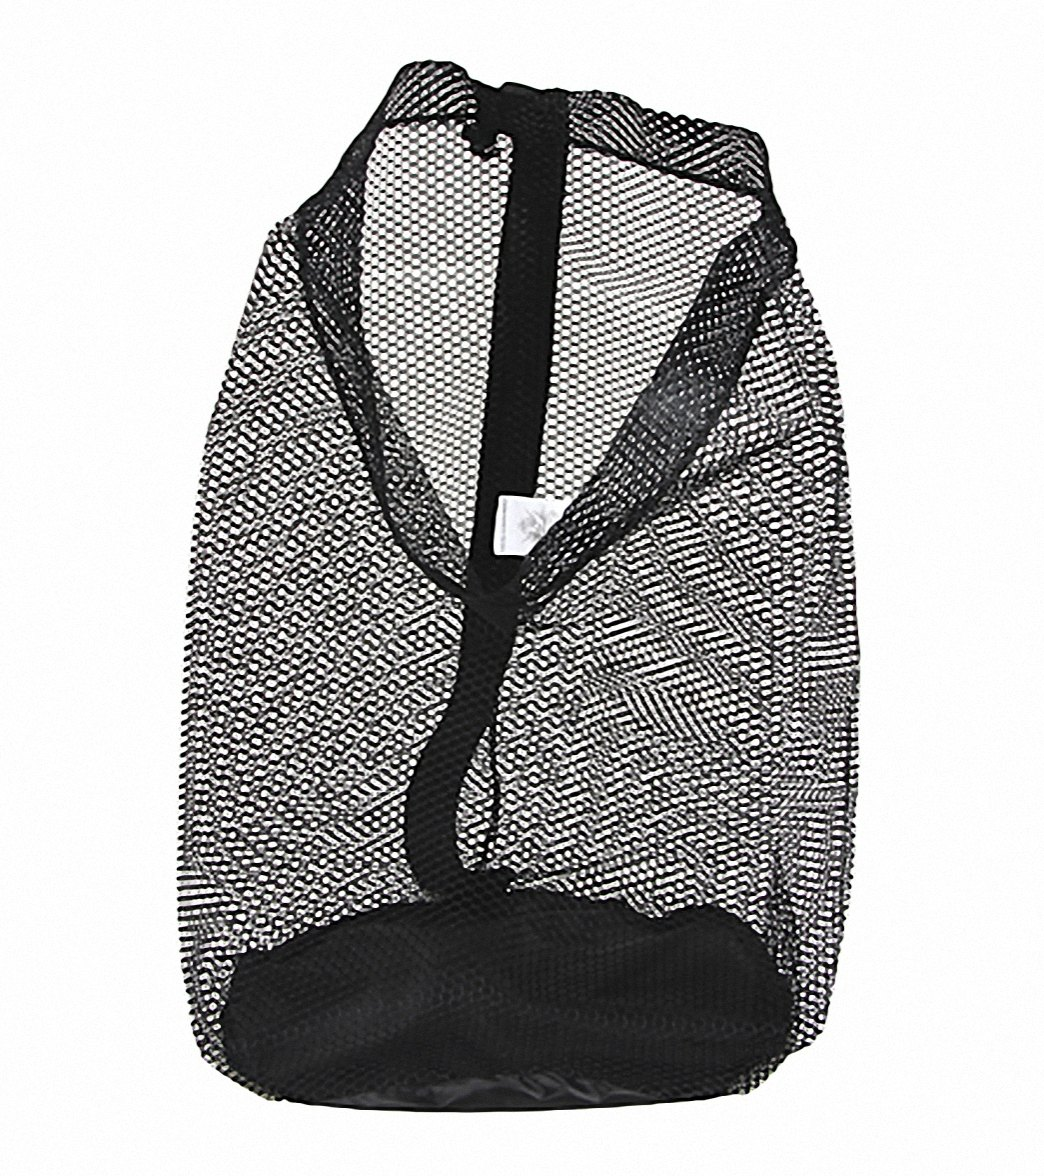 Wet Products Shoulder Strap Beach Mesh Bag at SwimOutlet.com